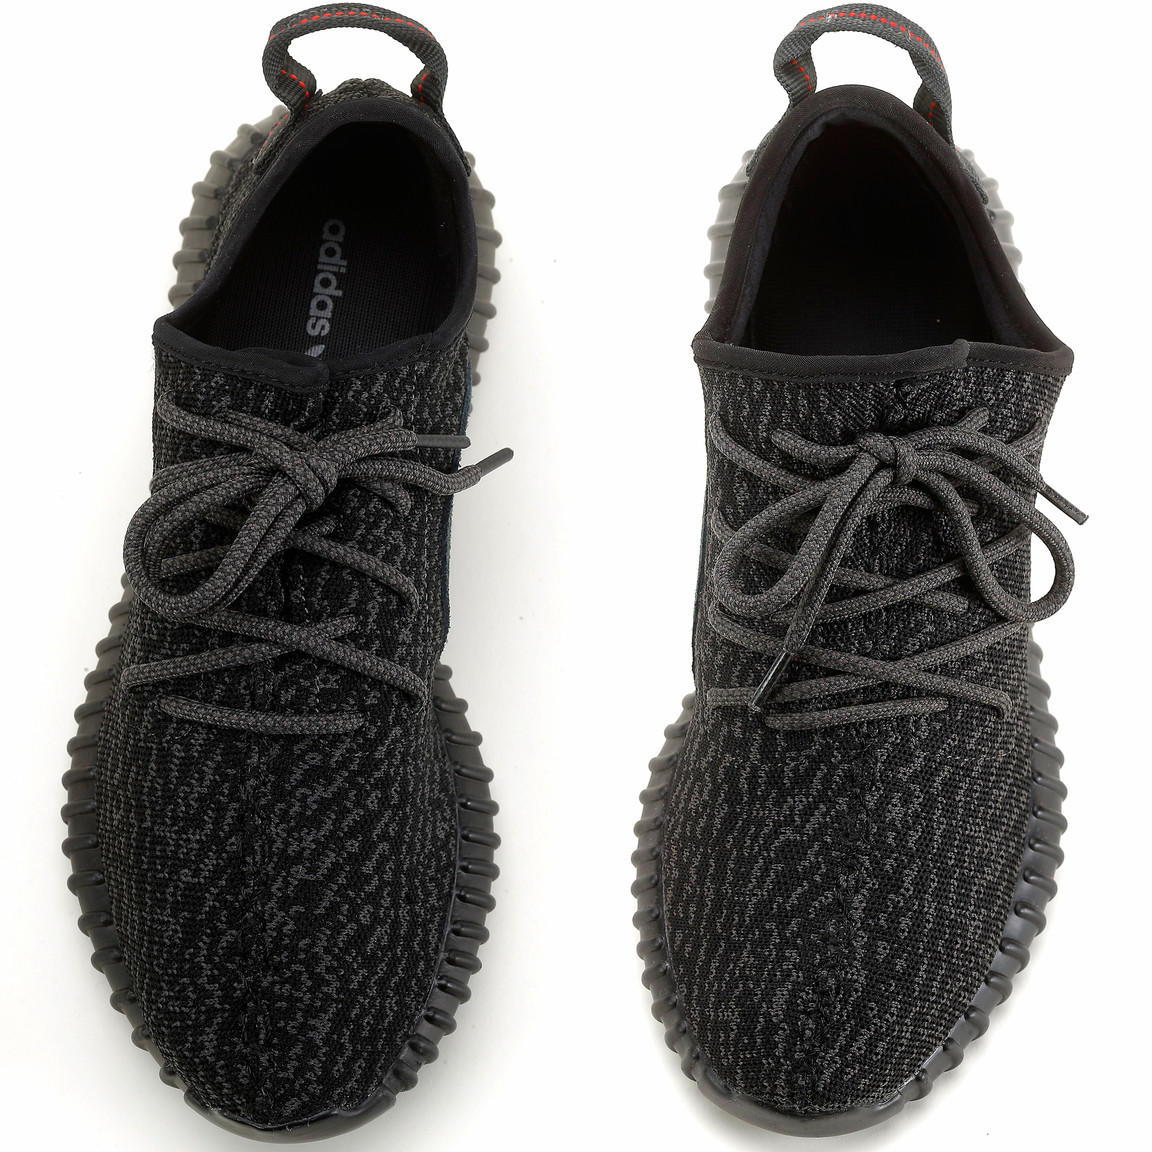 2bb1368b5ee4 Counterfeit Yeezys and the booming sneaker black market - Los ...